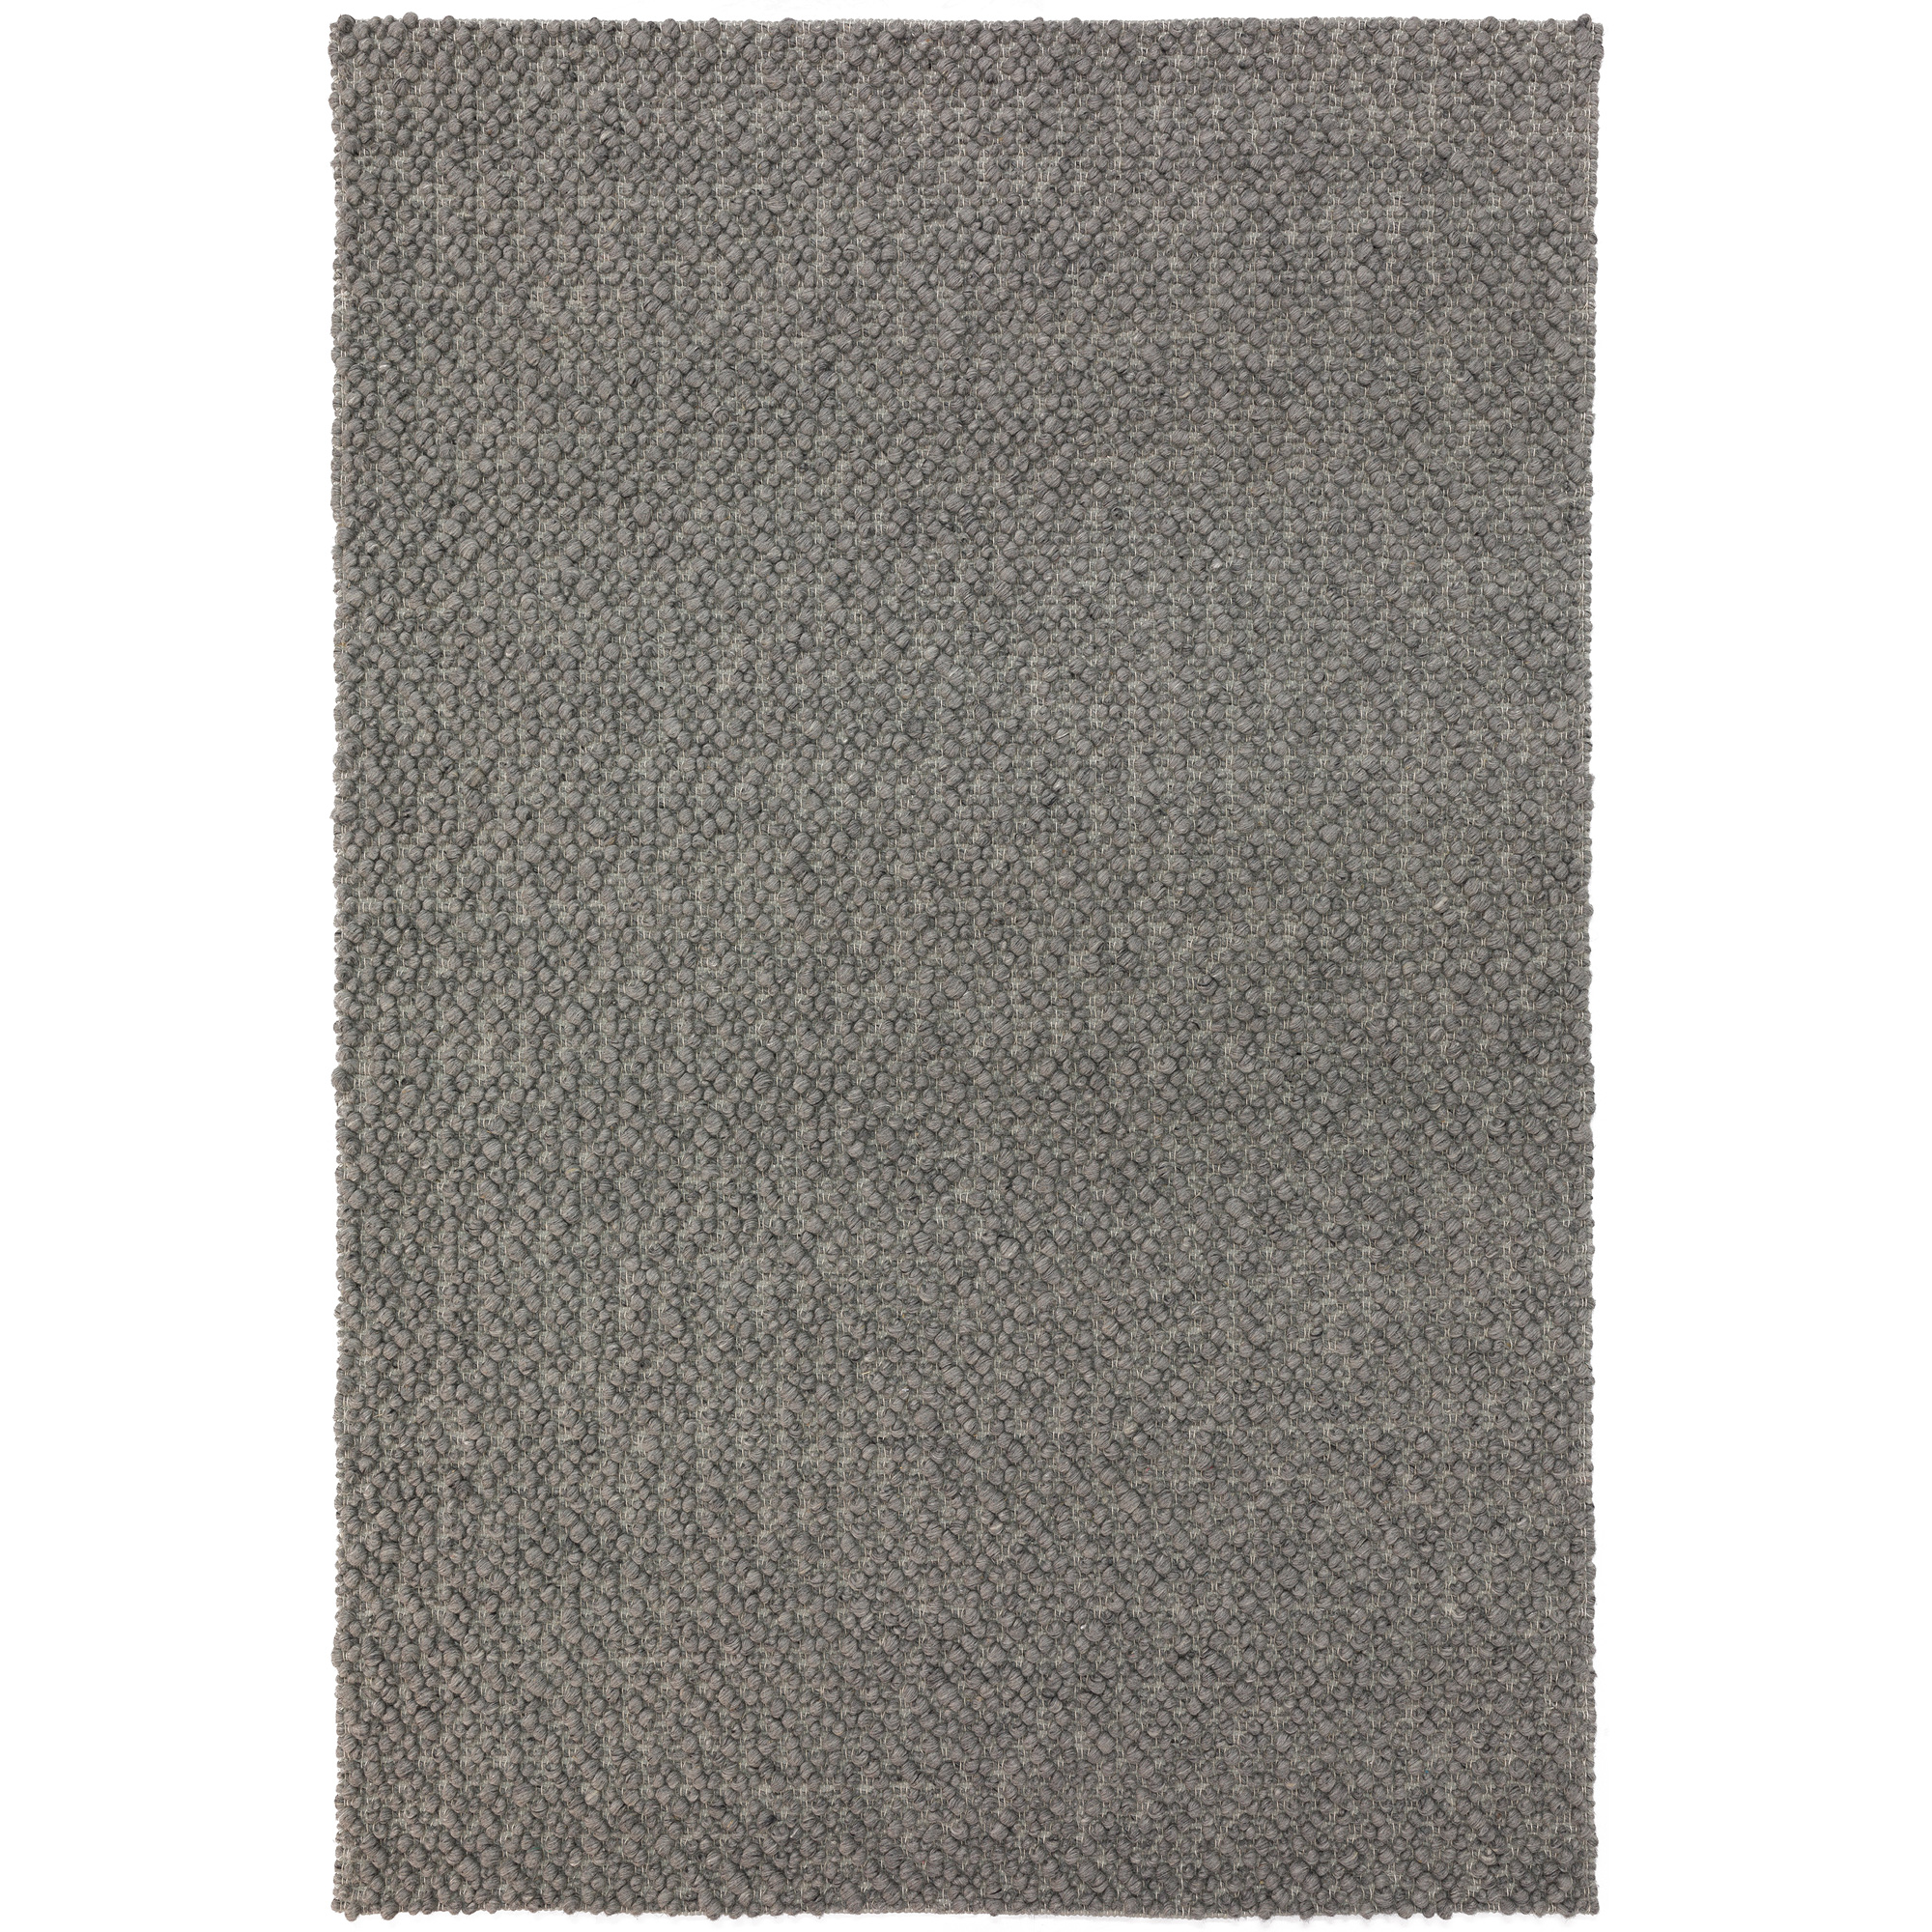 Dalyn Rug Company | Gorbea Pewter 8x10 Area Rug